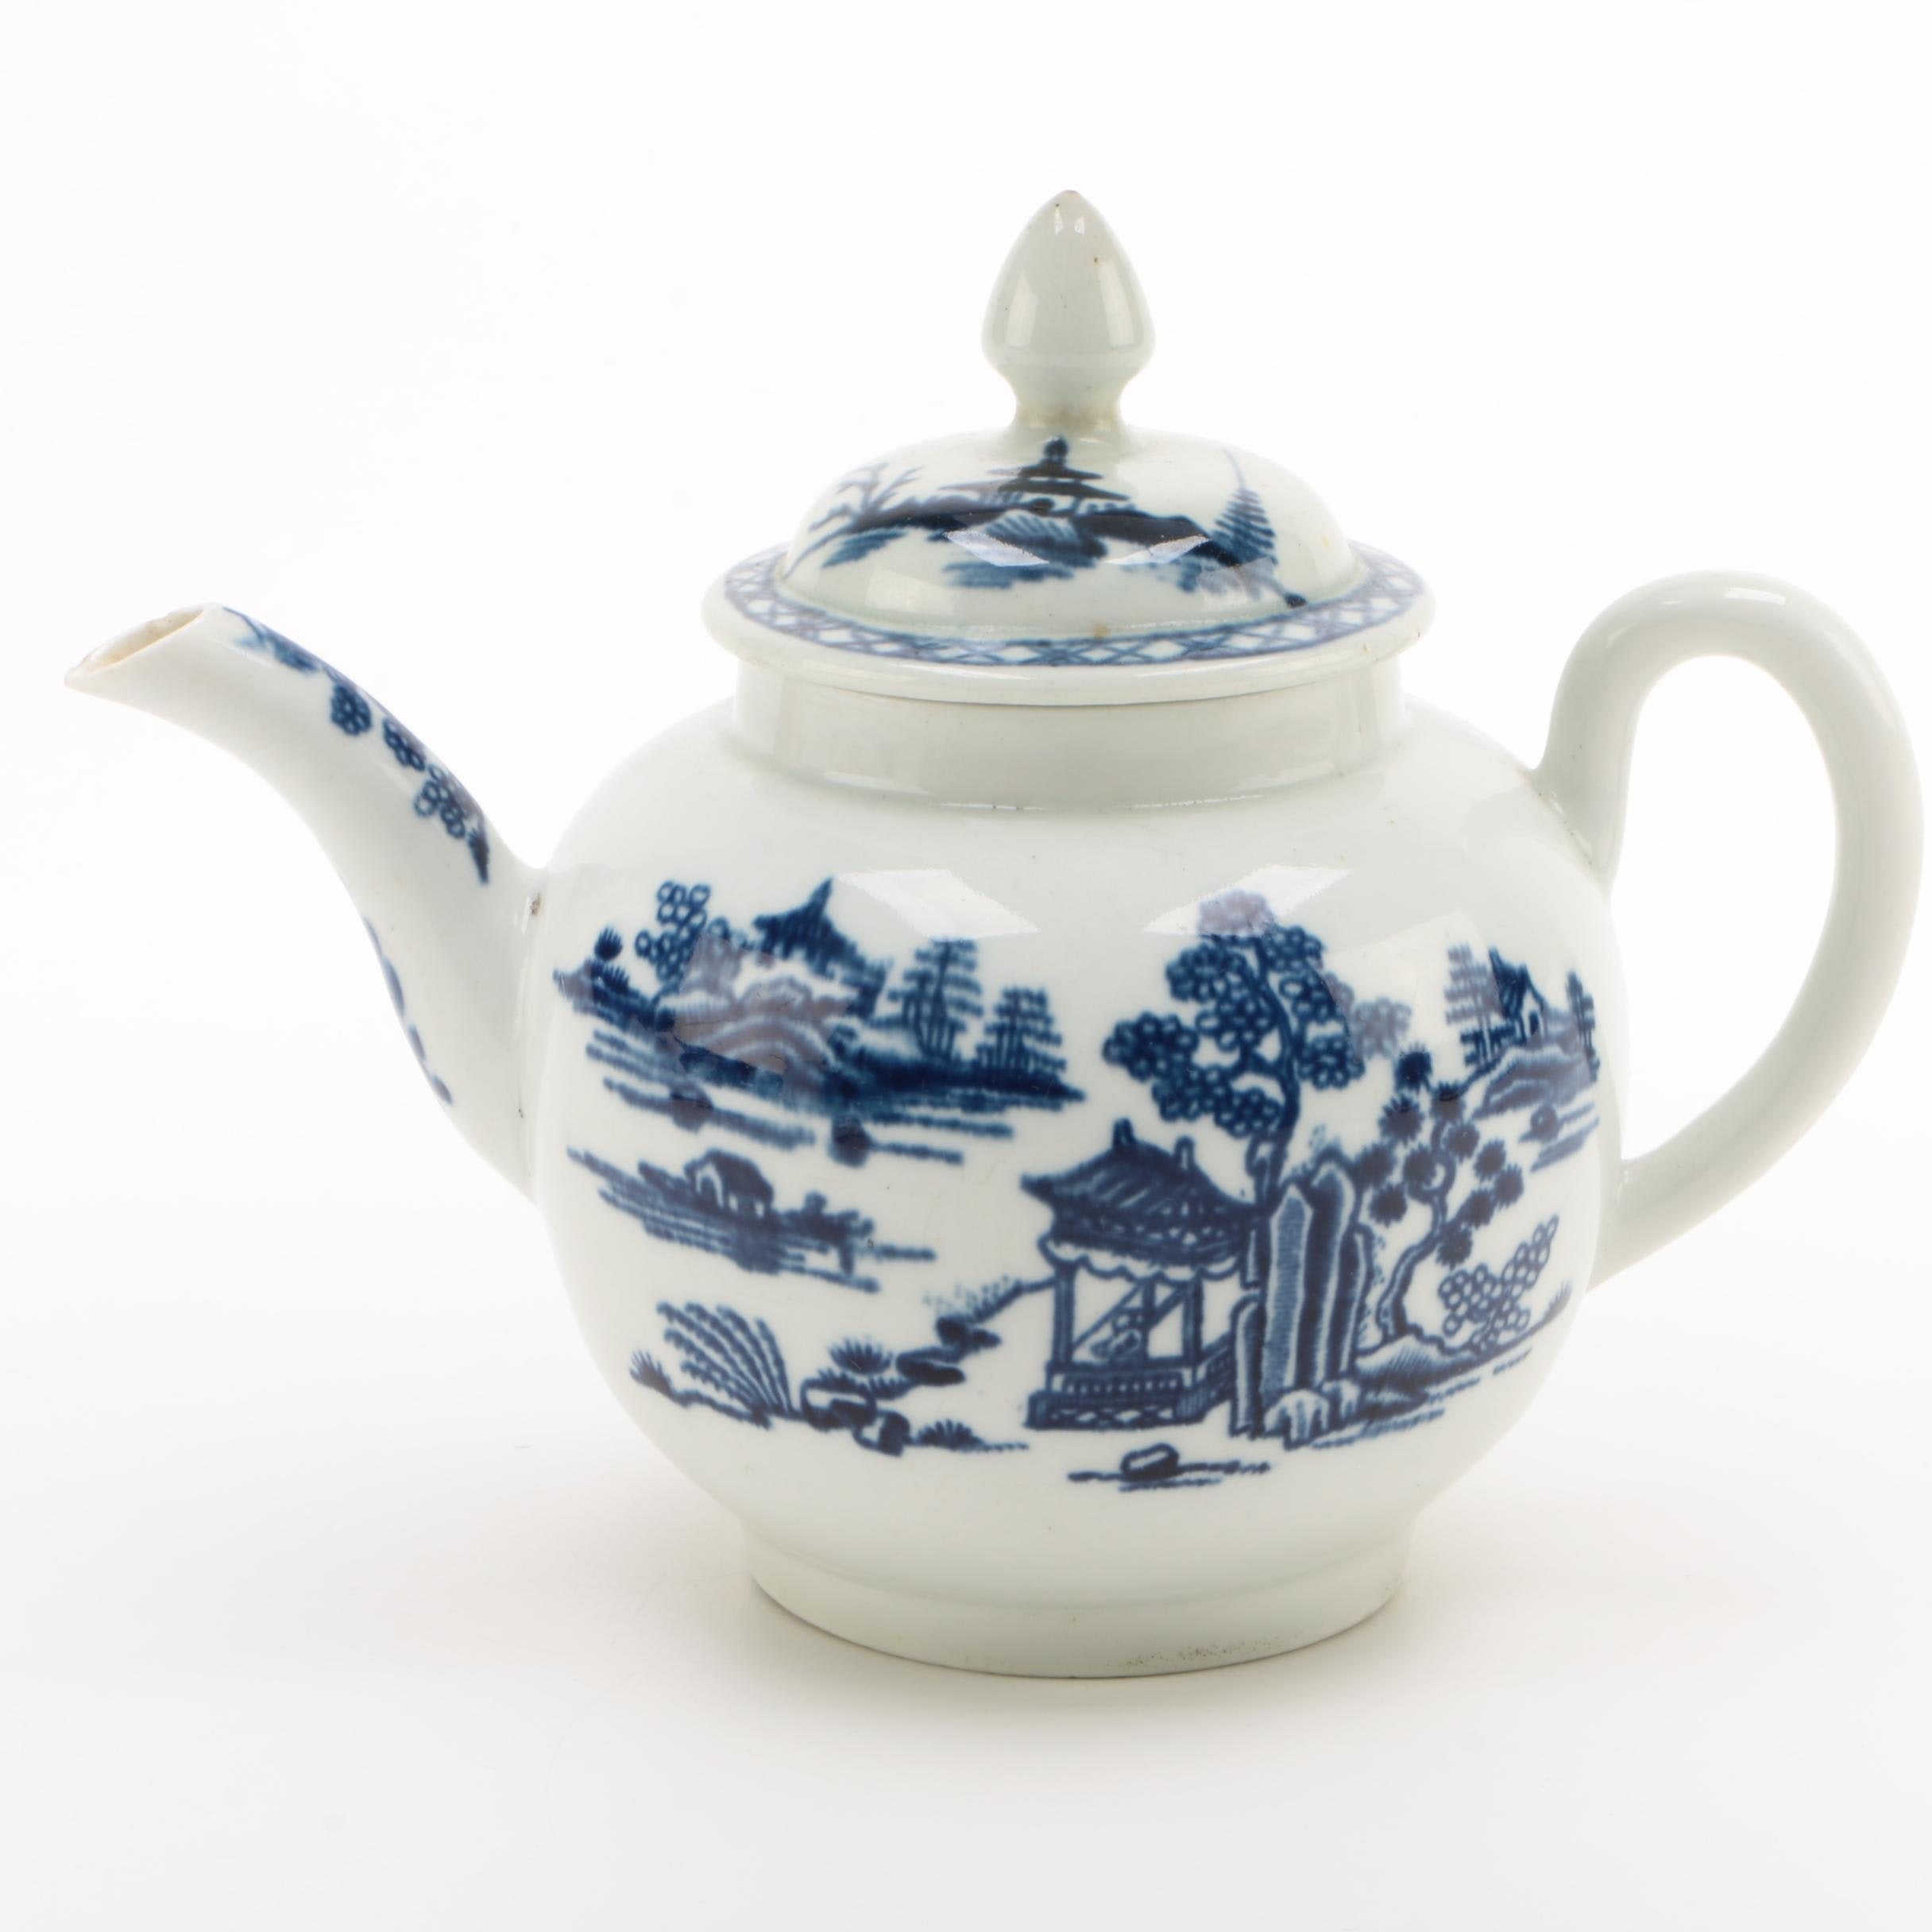 Royal Worcester Blue and White Porcelain Teapot, 1751-1783